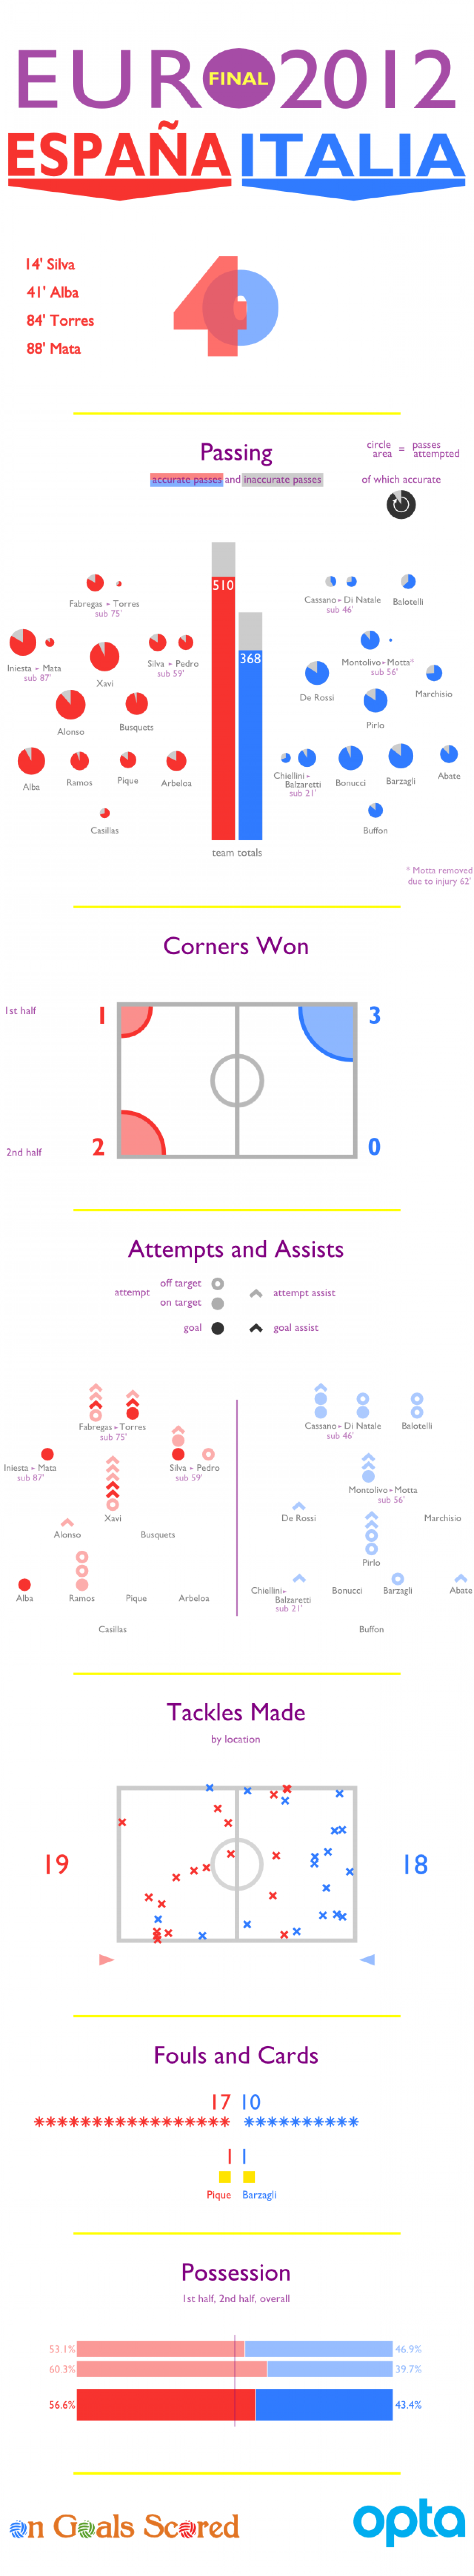 Euro 2012 Final Match Stats Infographic